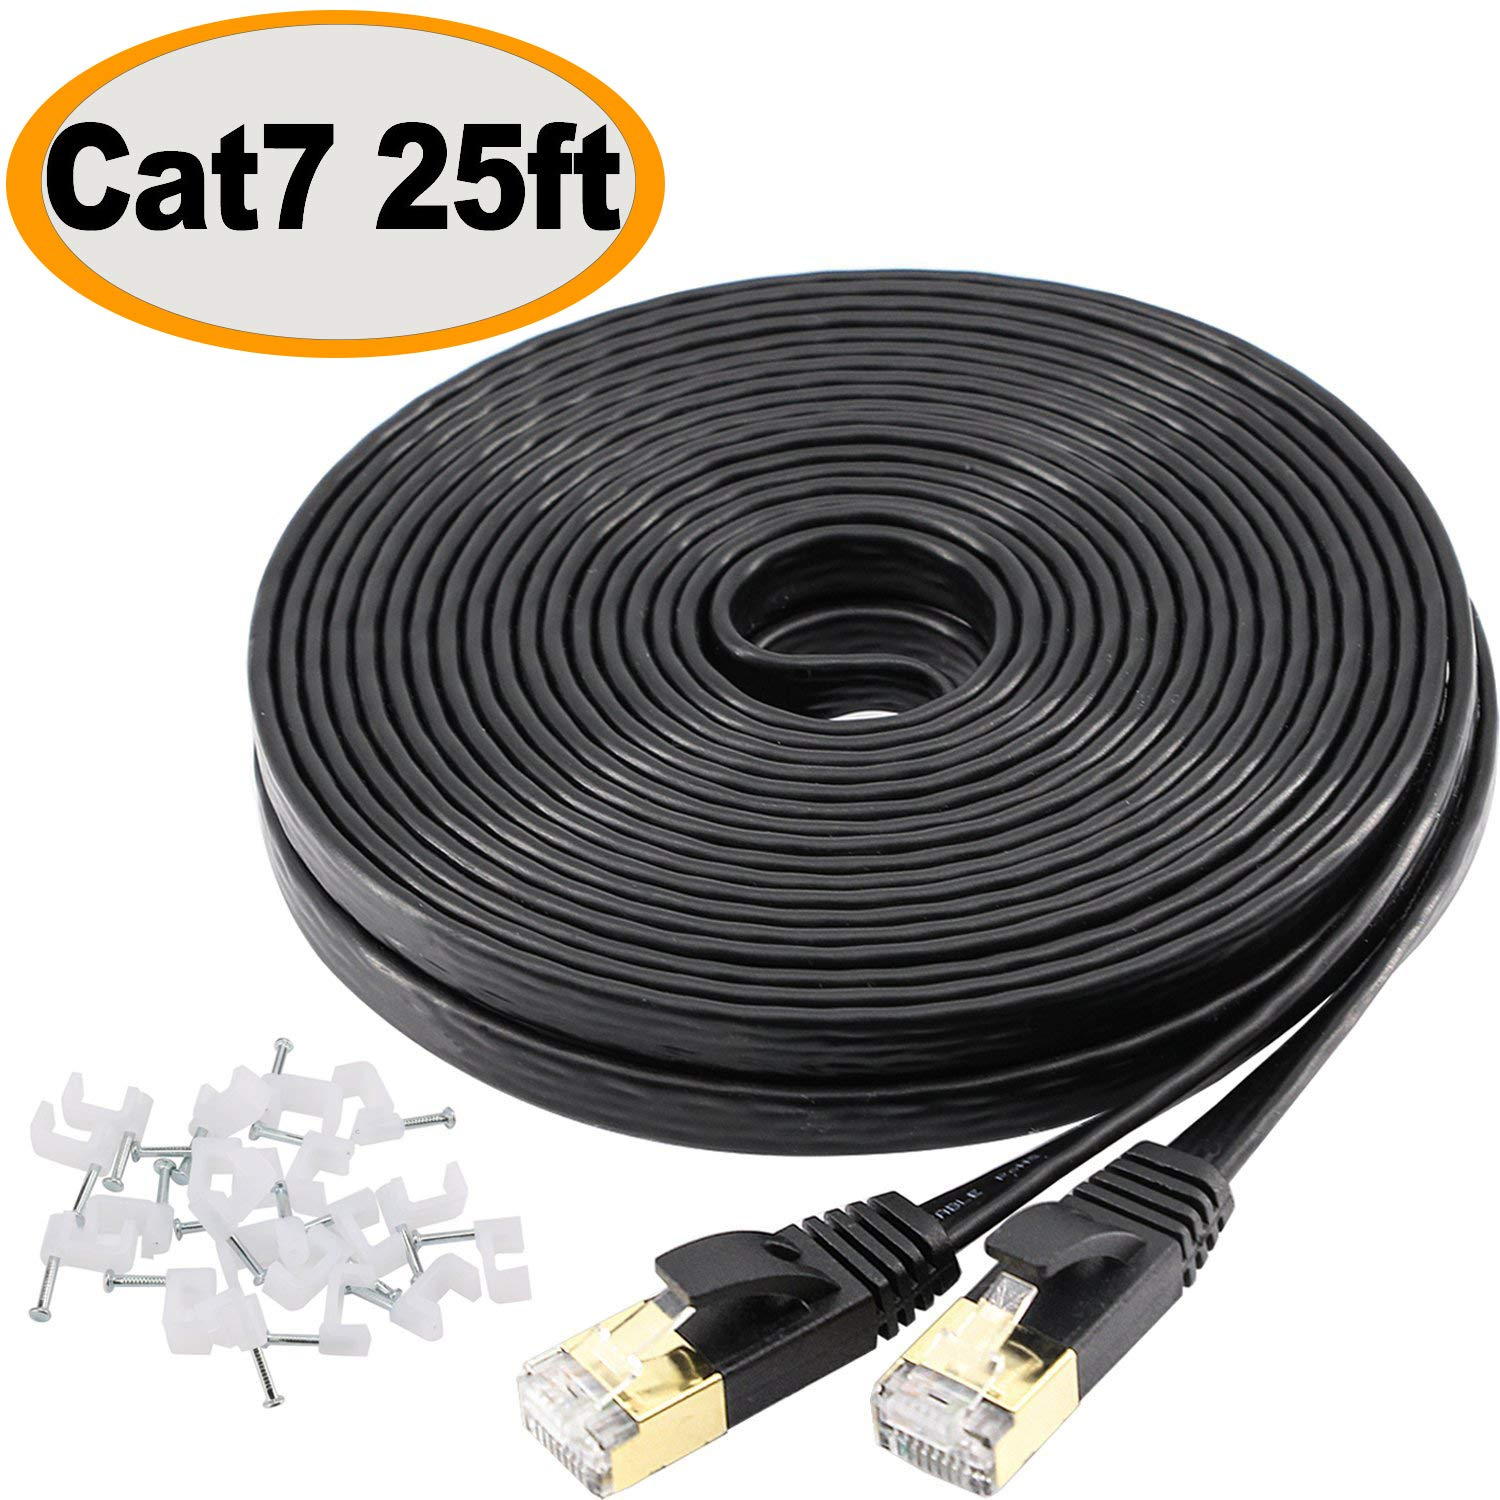 Jadaol Cat 7 Ethernet Cable 25 ft Shielded (STP), High Speed Solid Flat Internet Lan Computer patch cord, faster than Cat5e/Cat5/cat6, Durable Rj45 Cat7 network Wire for Router, Modem, Xbox, PS- Black by Jadaol